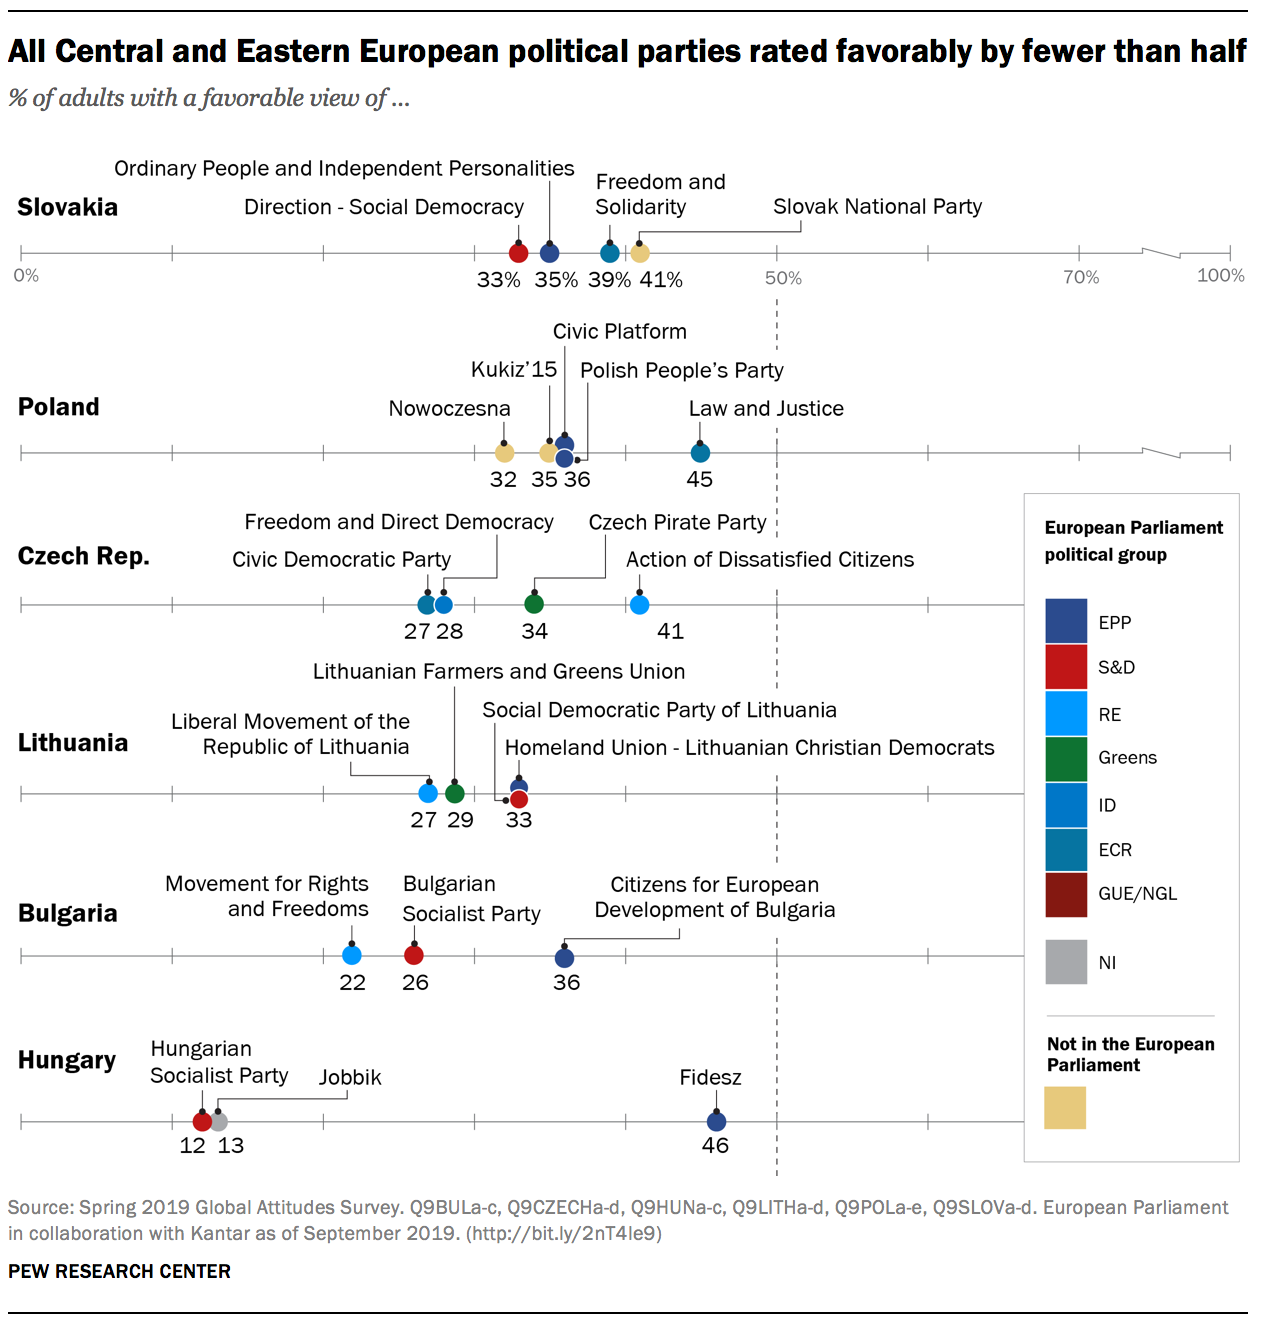 All Central and Eastern European political parties rated favorably by fewer than half